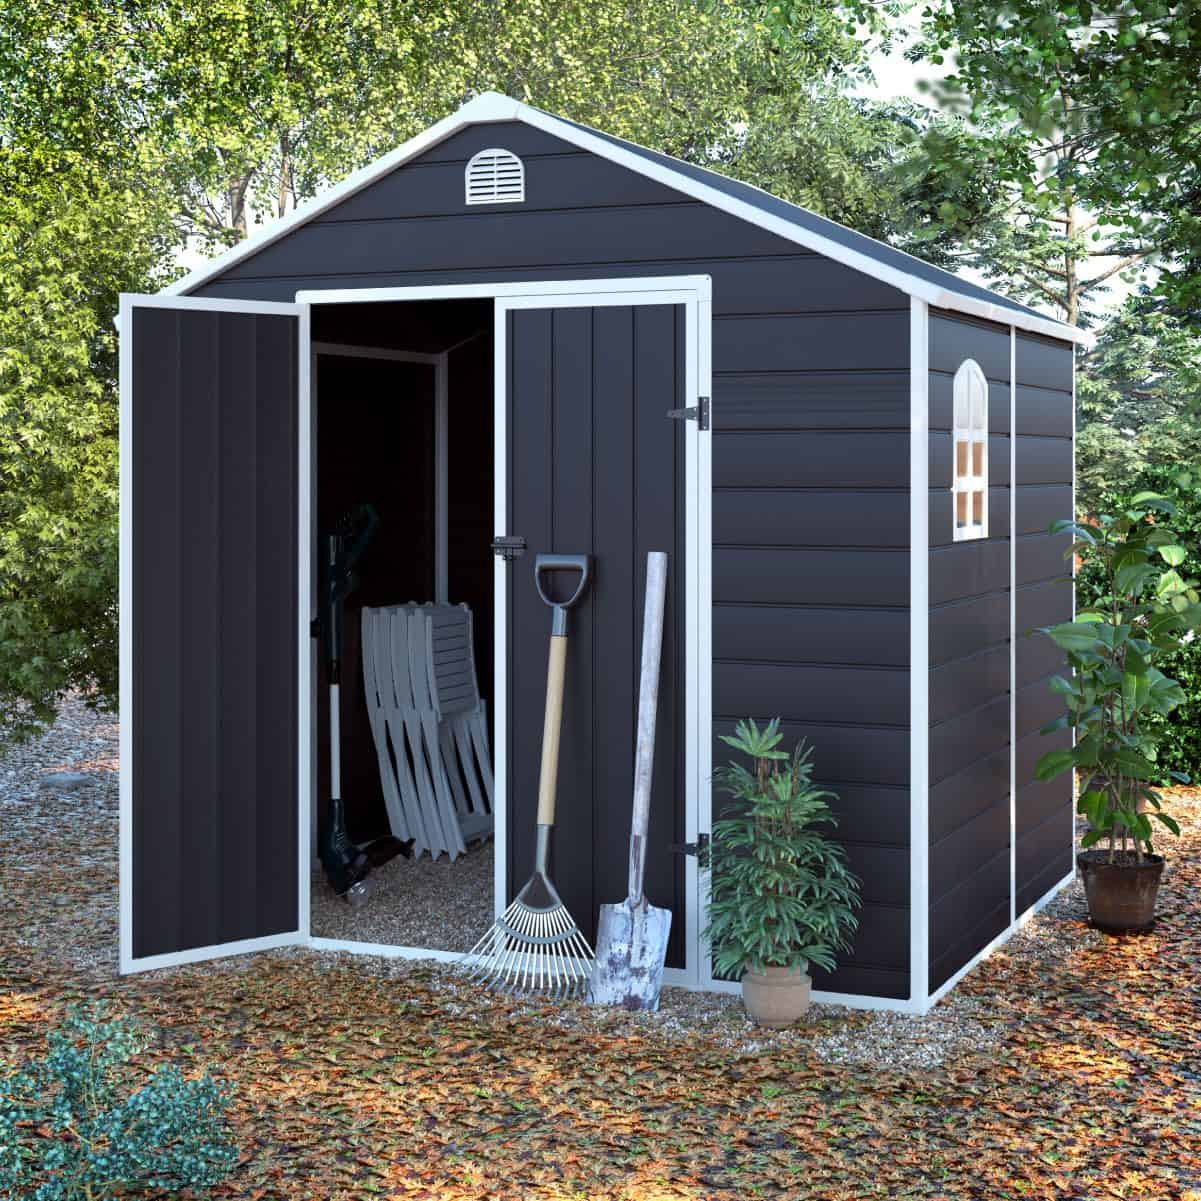 choosing-best-plastic-shed-what-to-look-for